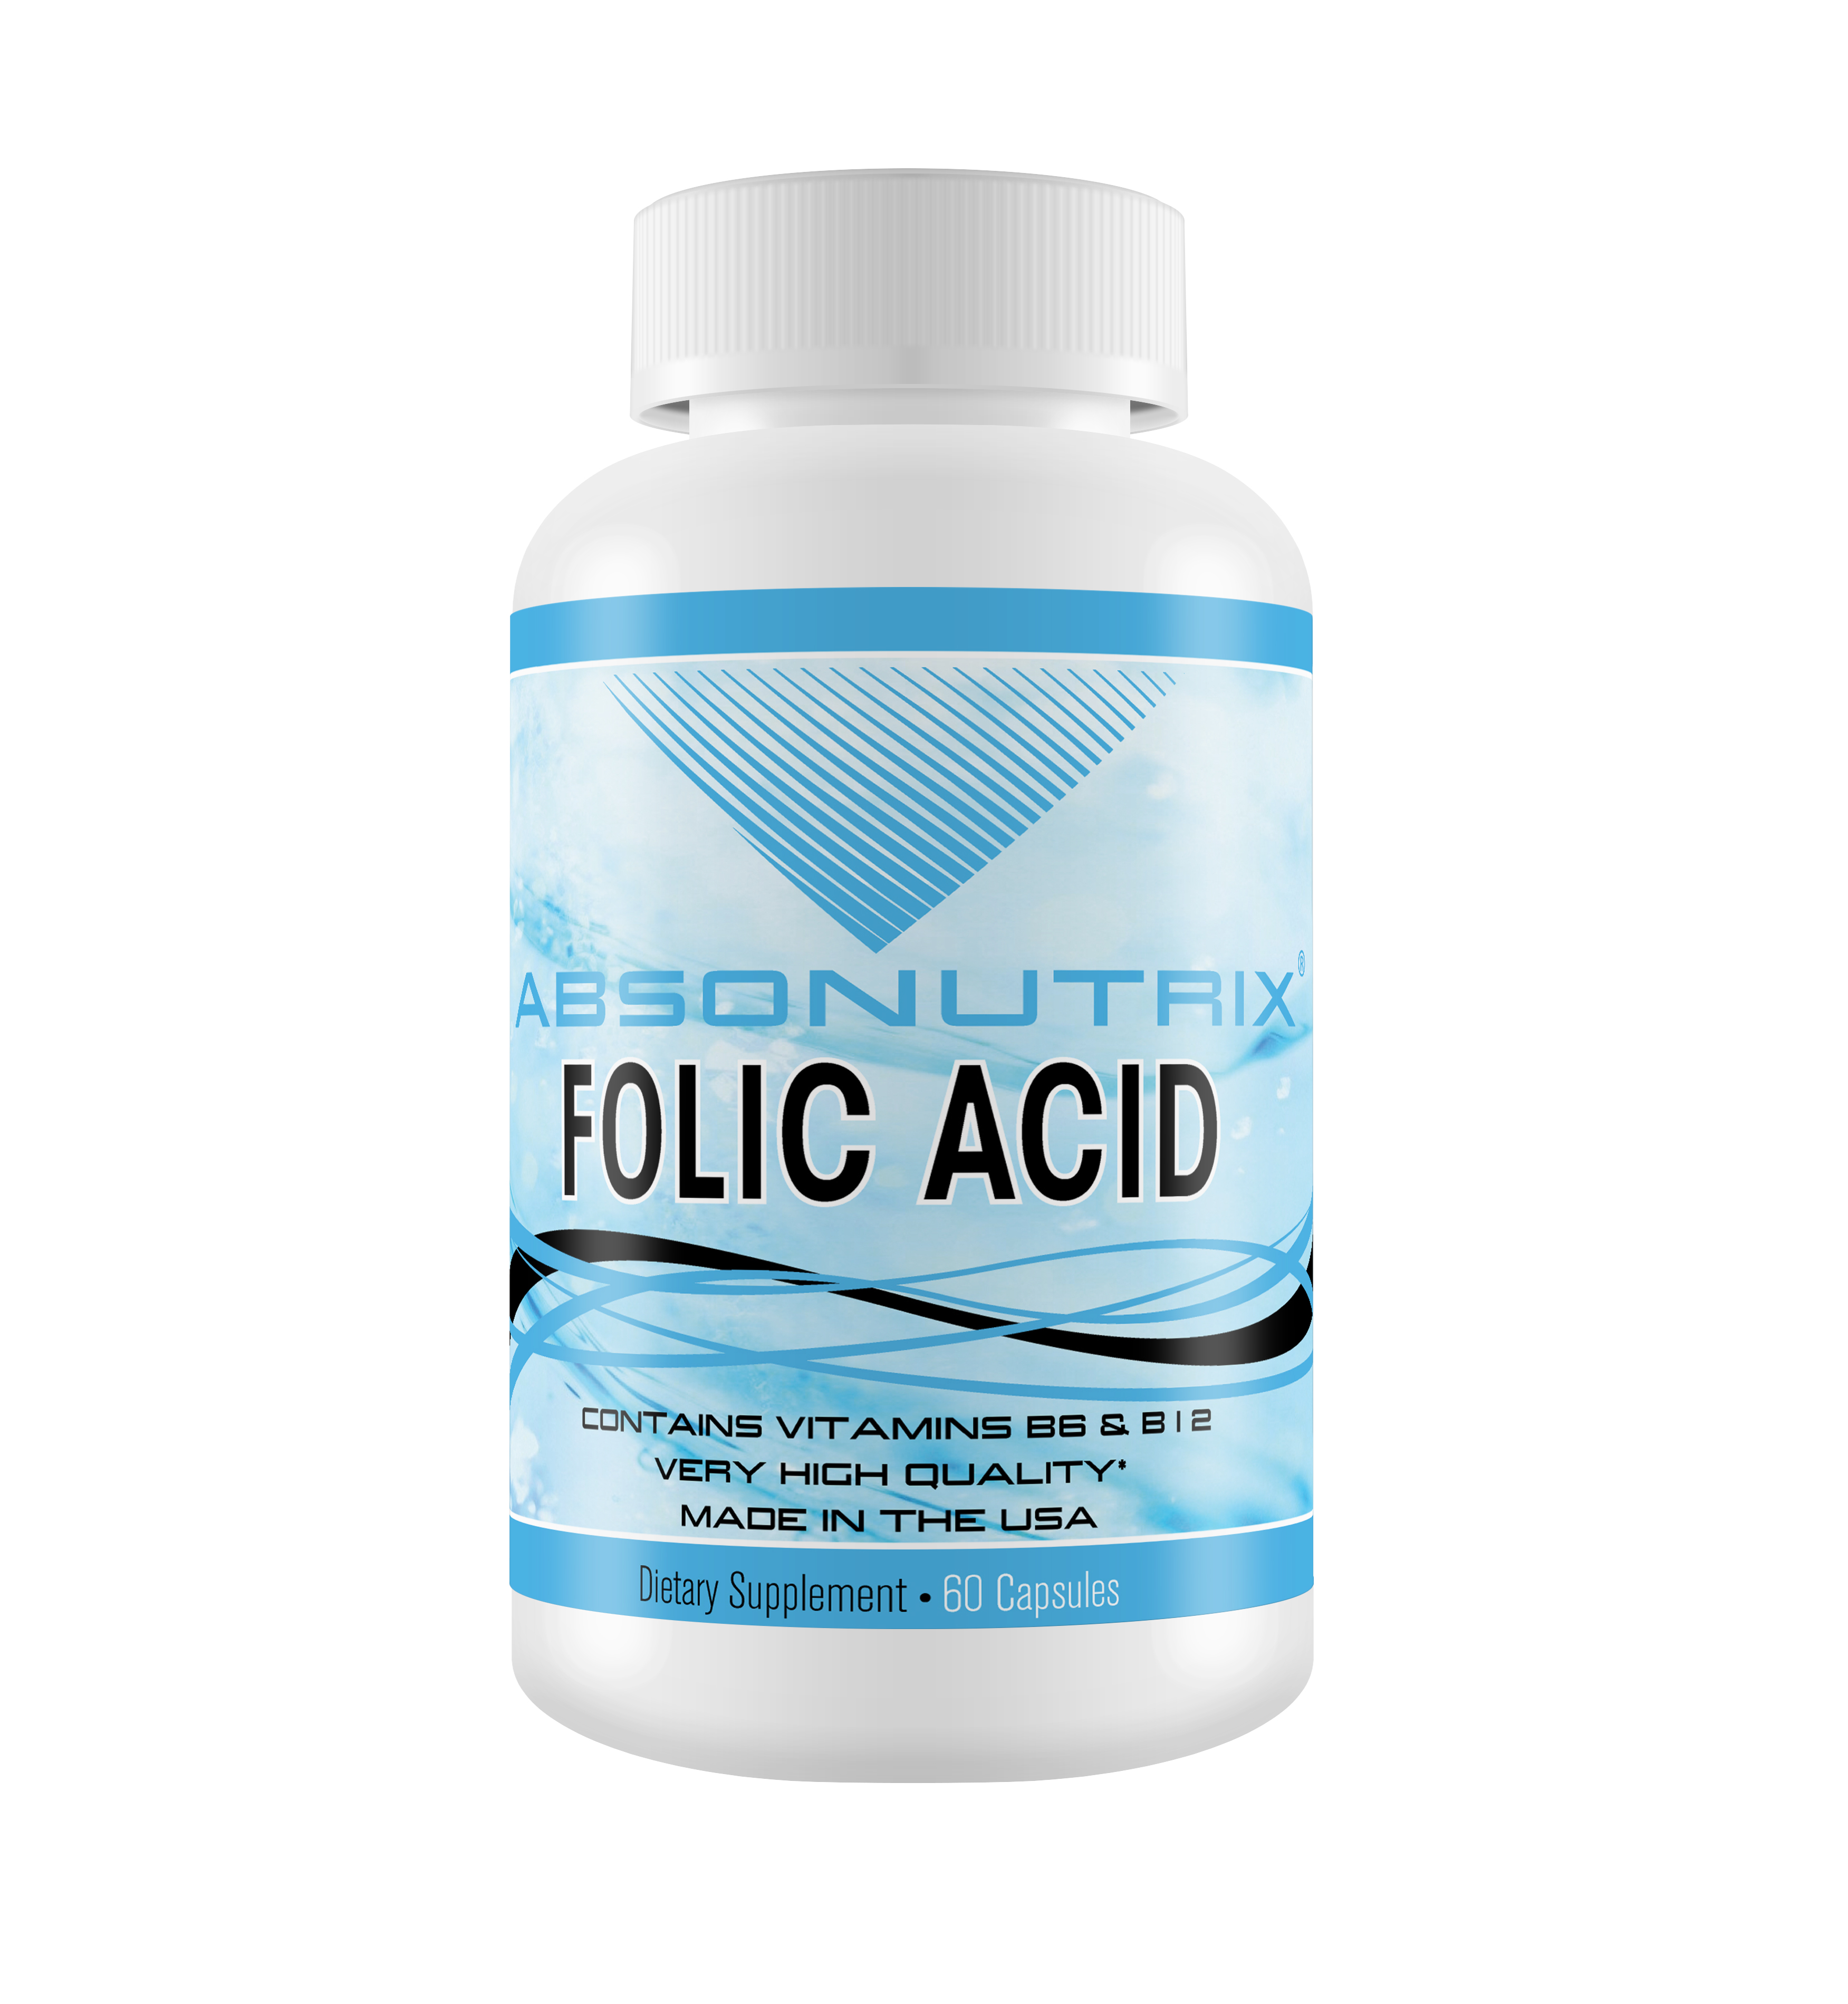 Absonutrix Folic Acid